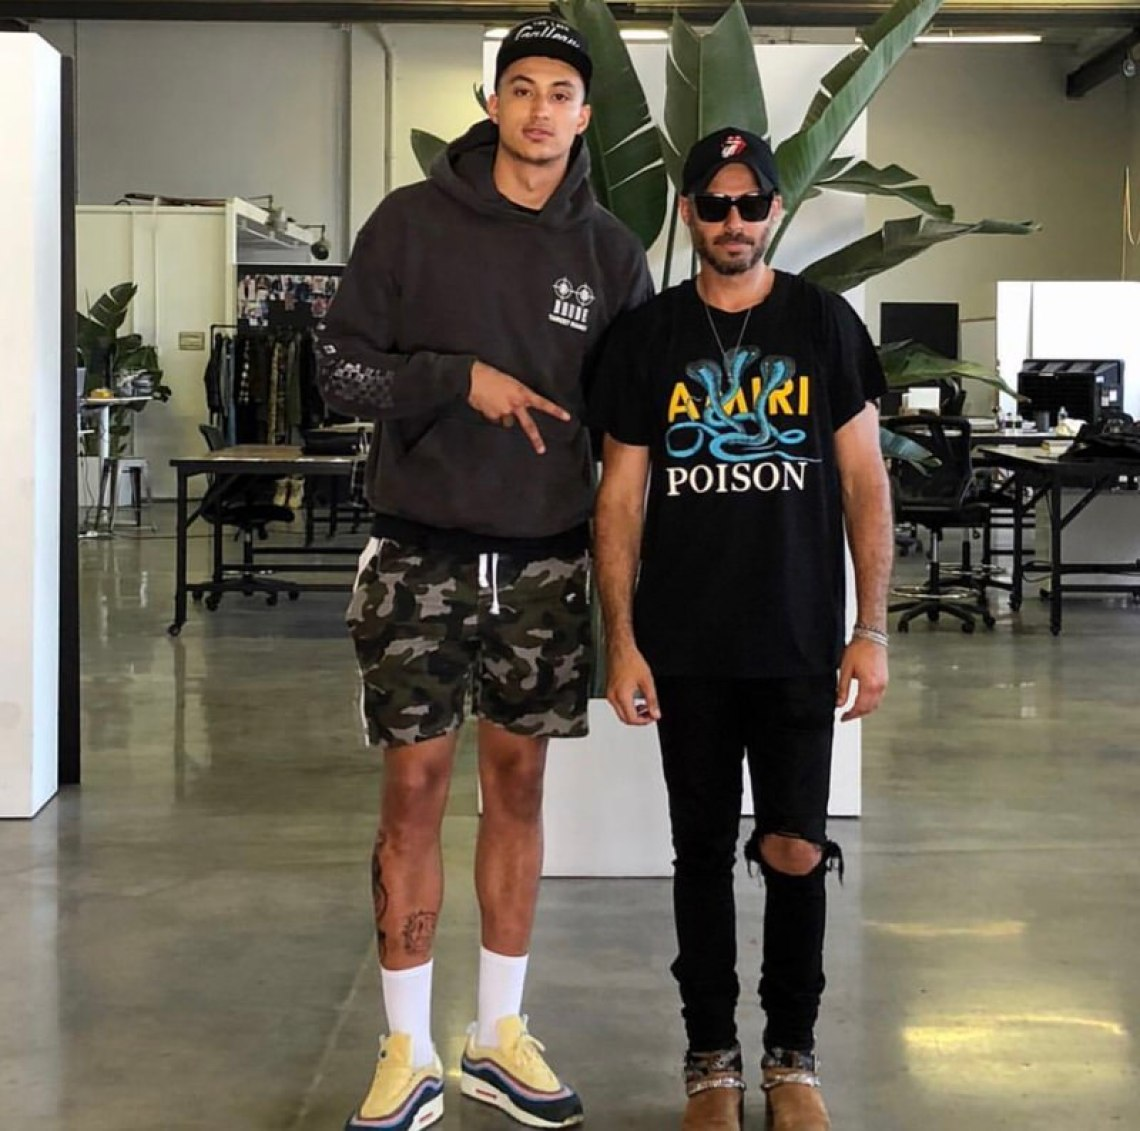 What's crazy is that Kuz actually knows Mike Amiri in person too.